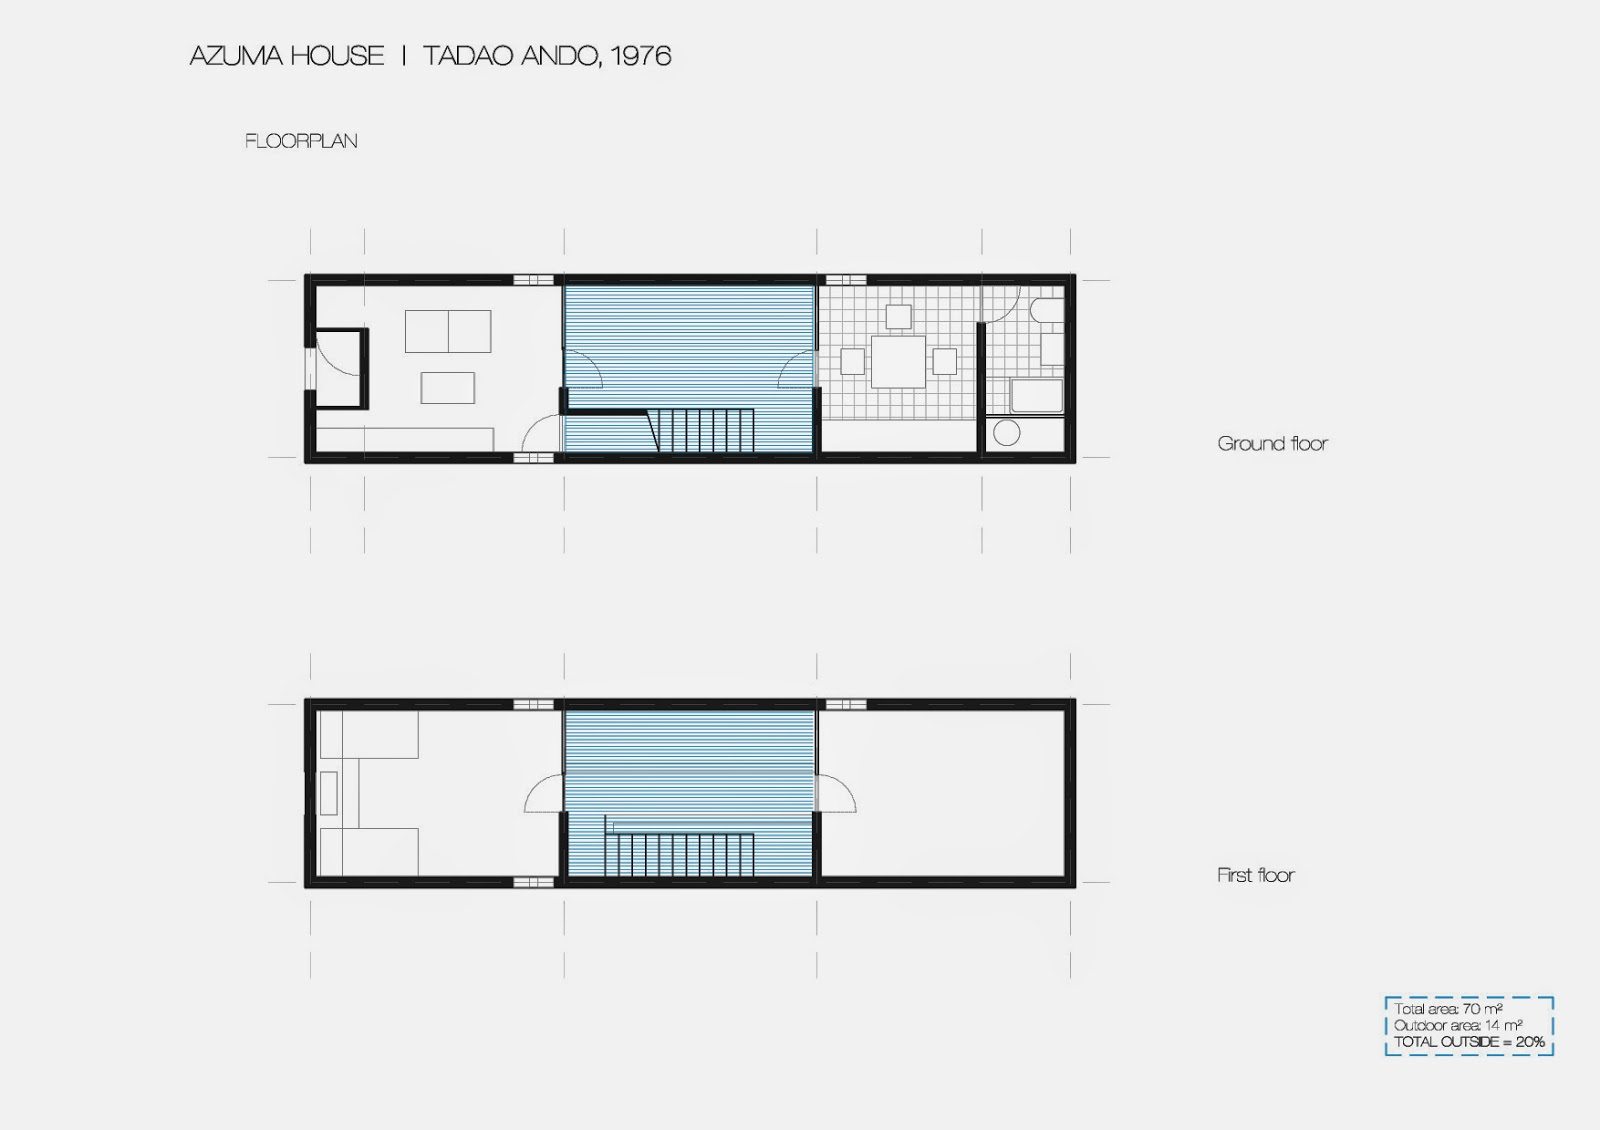 Art and architecture tadao ando and azuma house for Row house dimensions